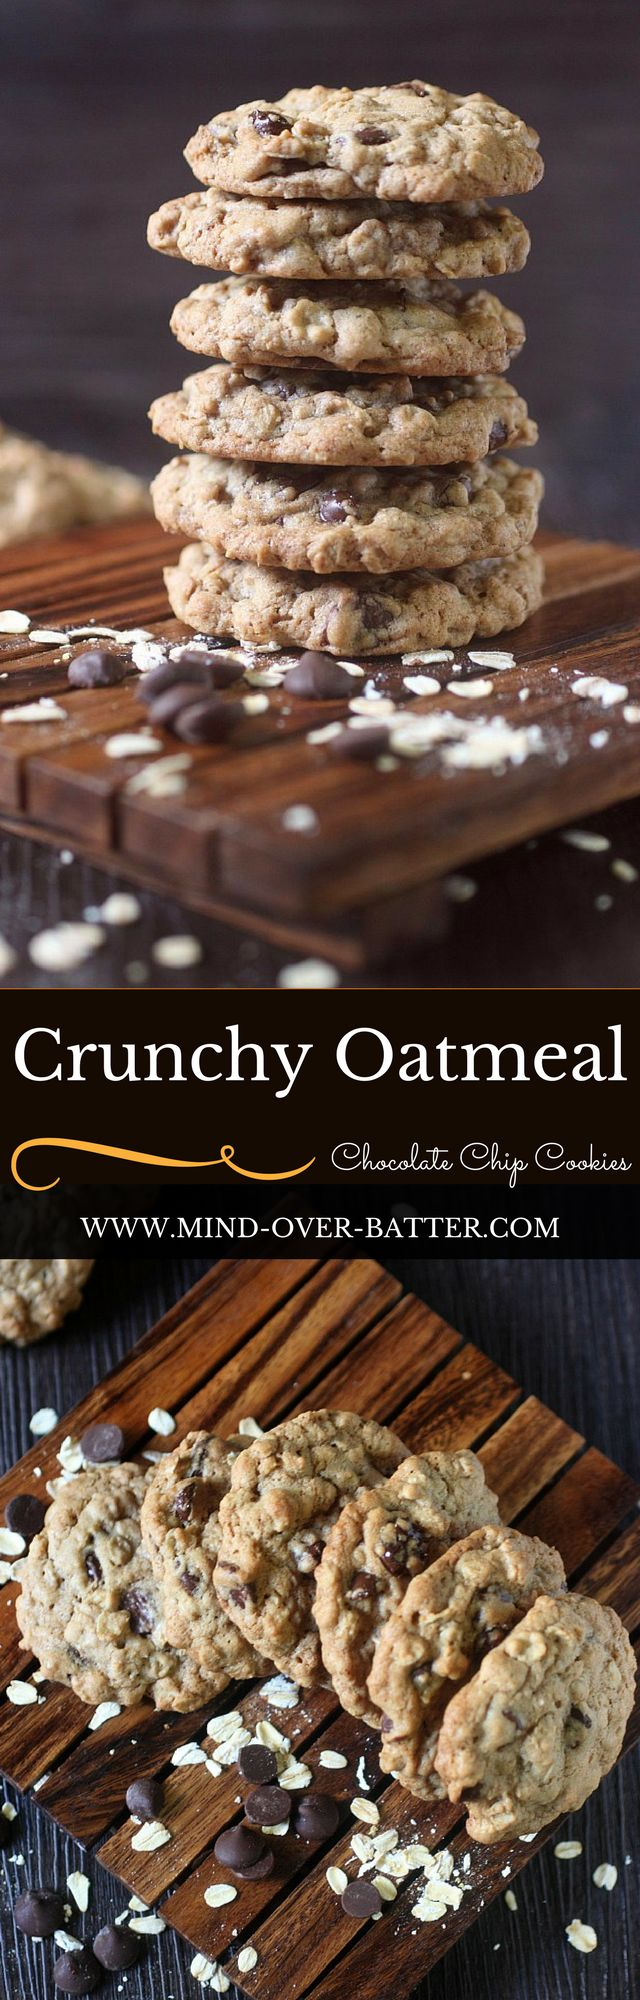 Crunchy Oatmeal Chocolate Chip Cookies -- www.mind-over-batter.com